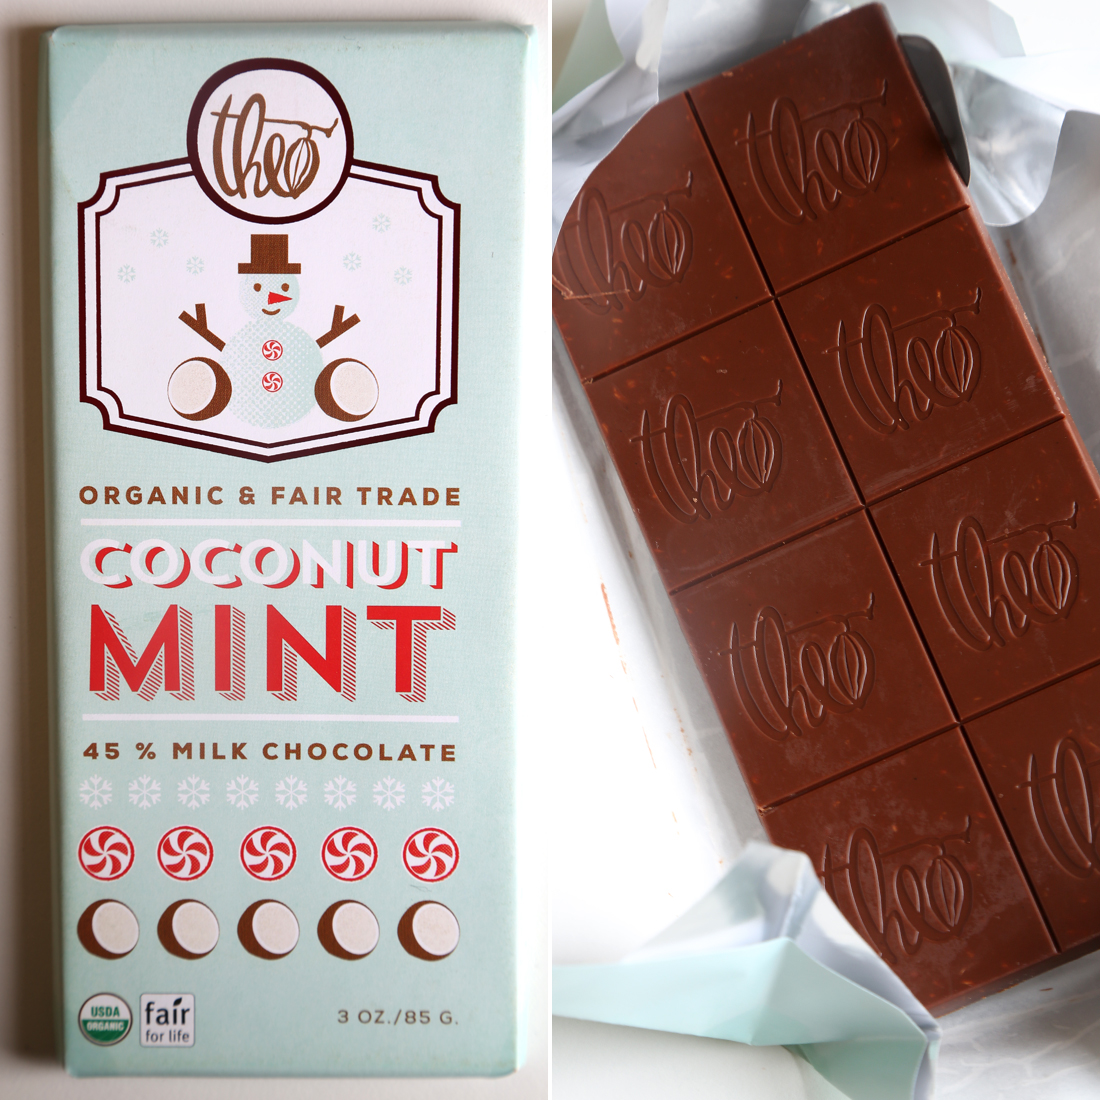 Theo Coconut Mint